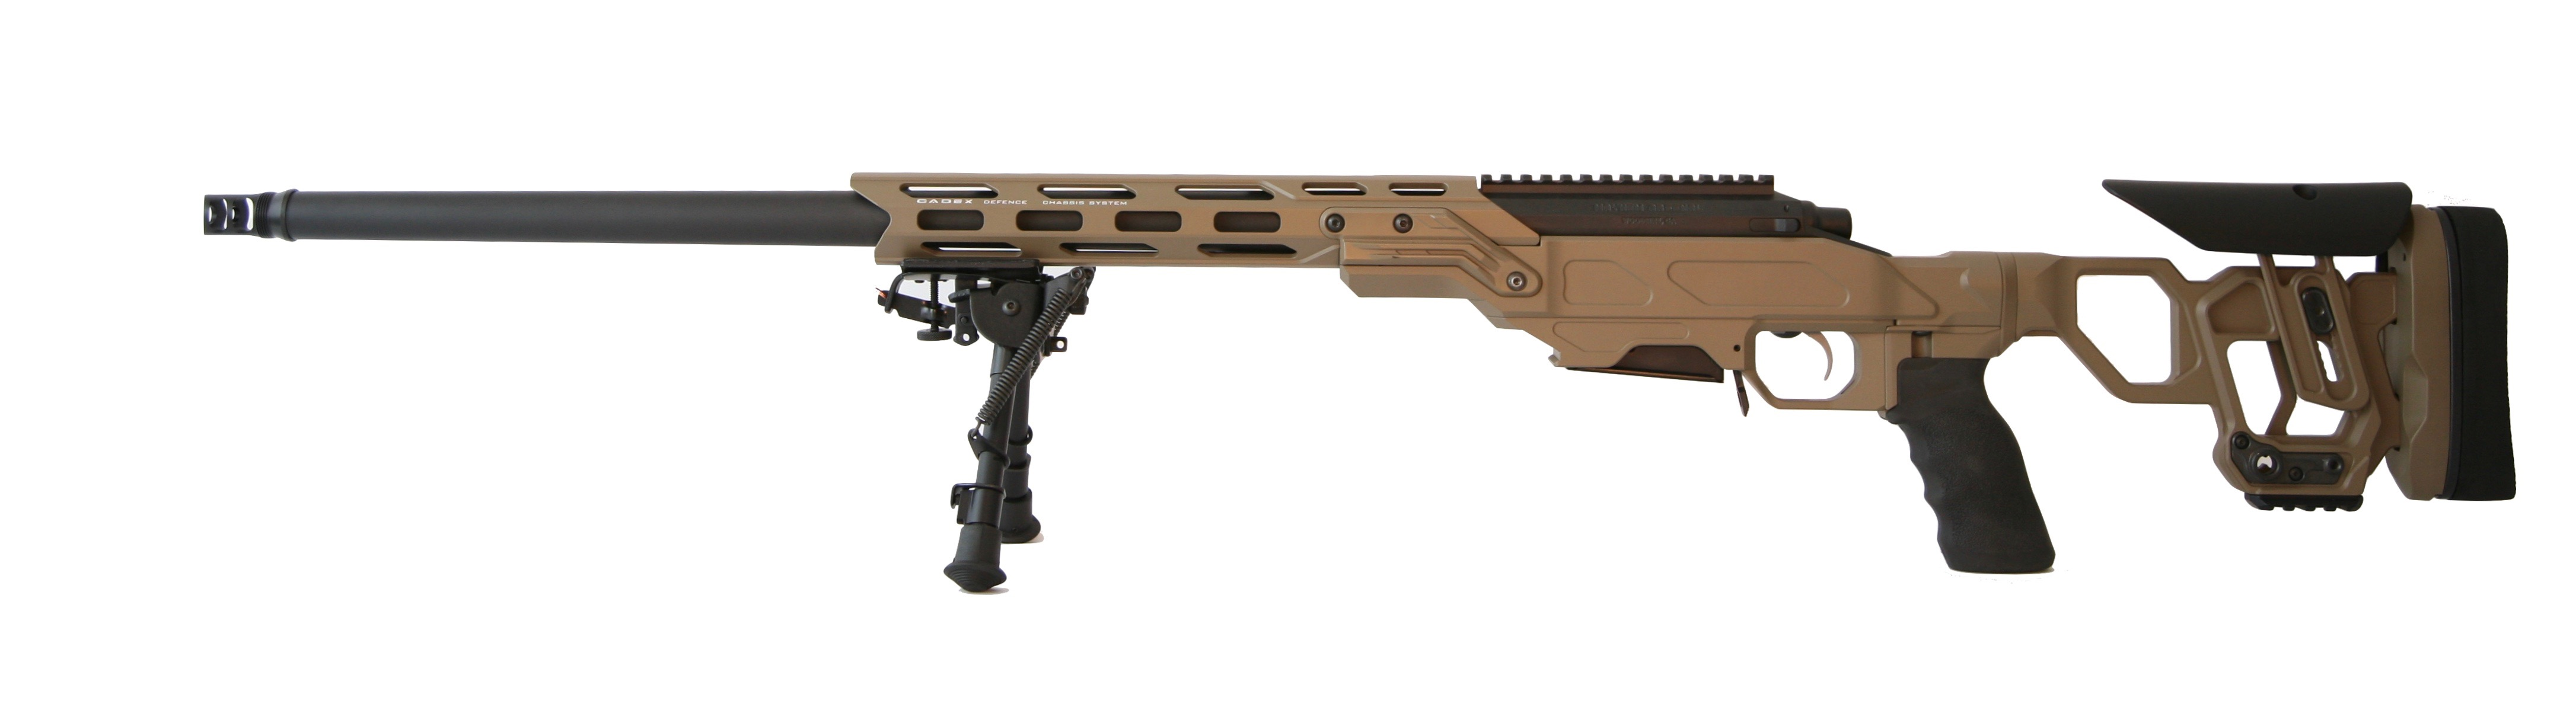 M0021 Precision Rifle Series rifles